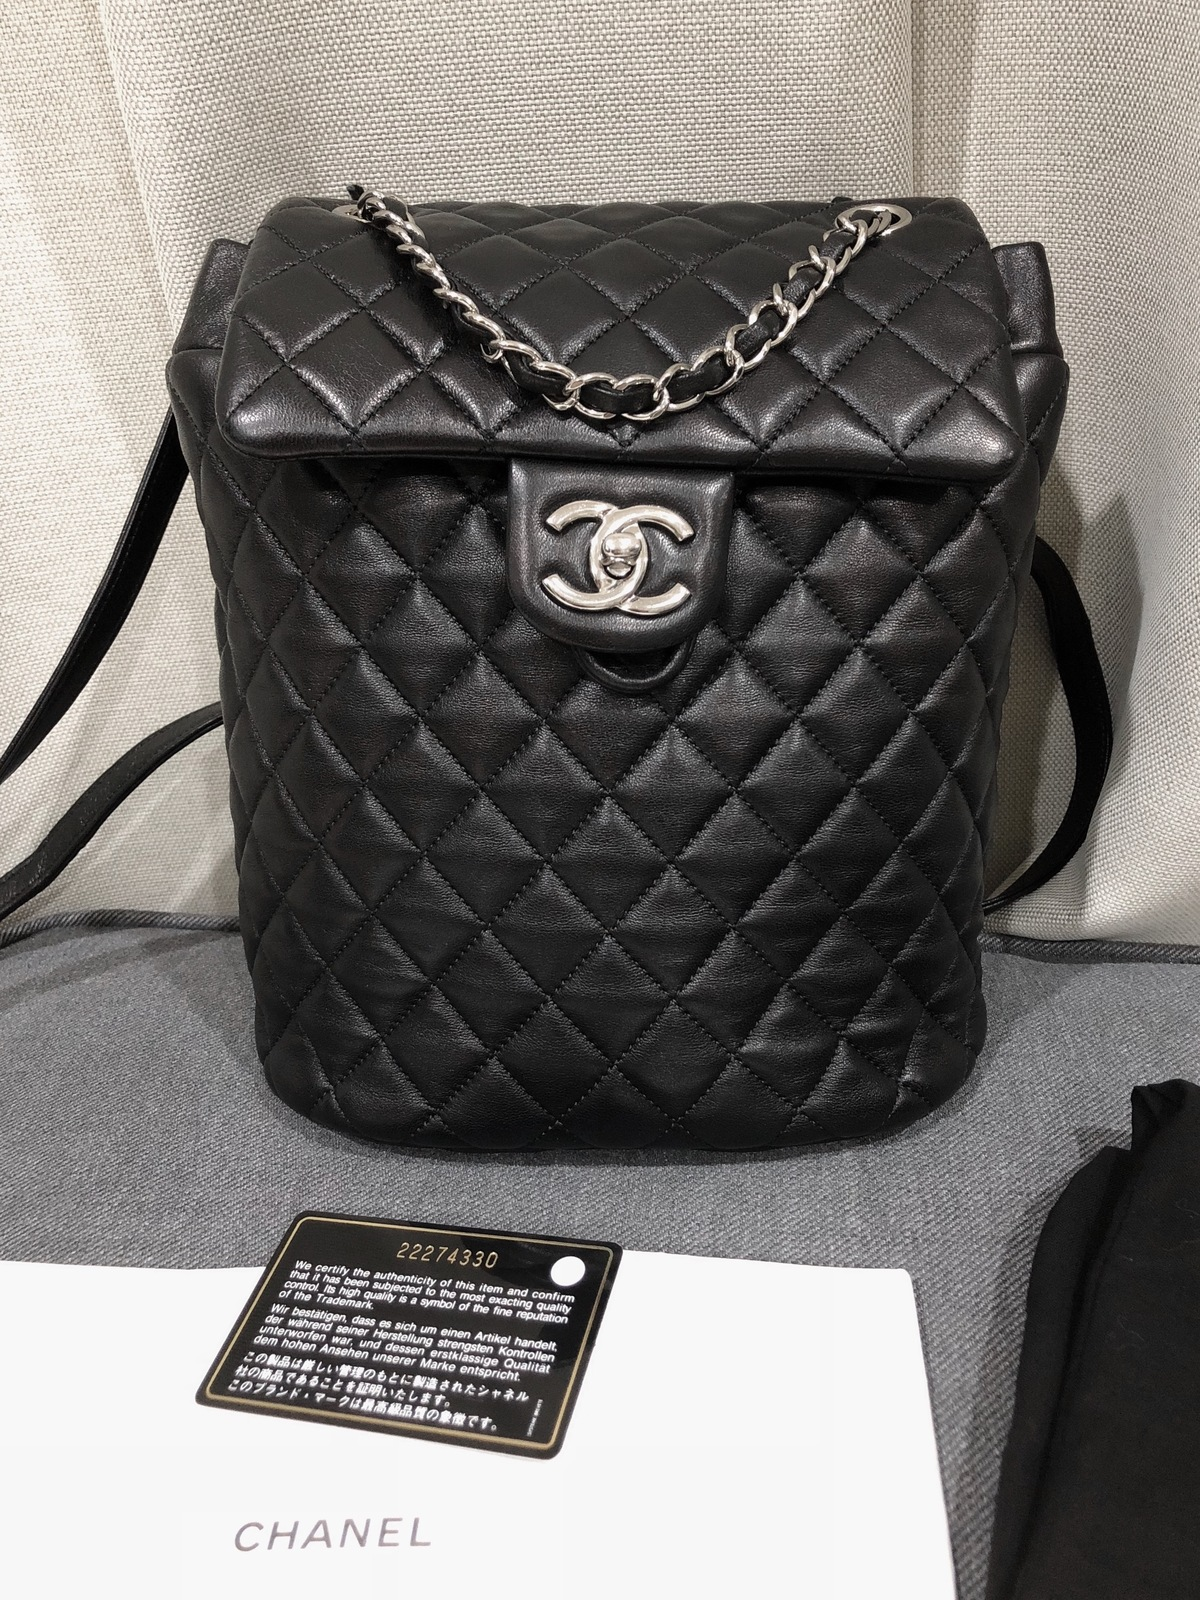 c86742e7cdb1 100% Authentic Chanel 2017 Black Quilted and 12 similar items